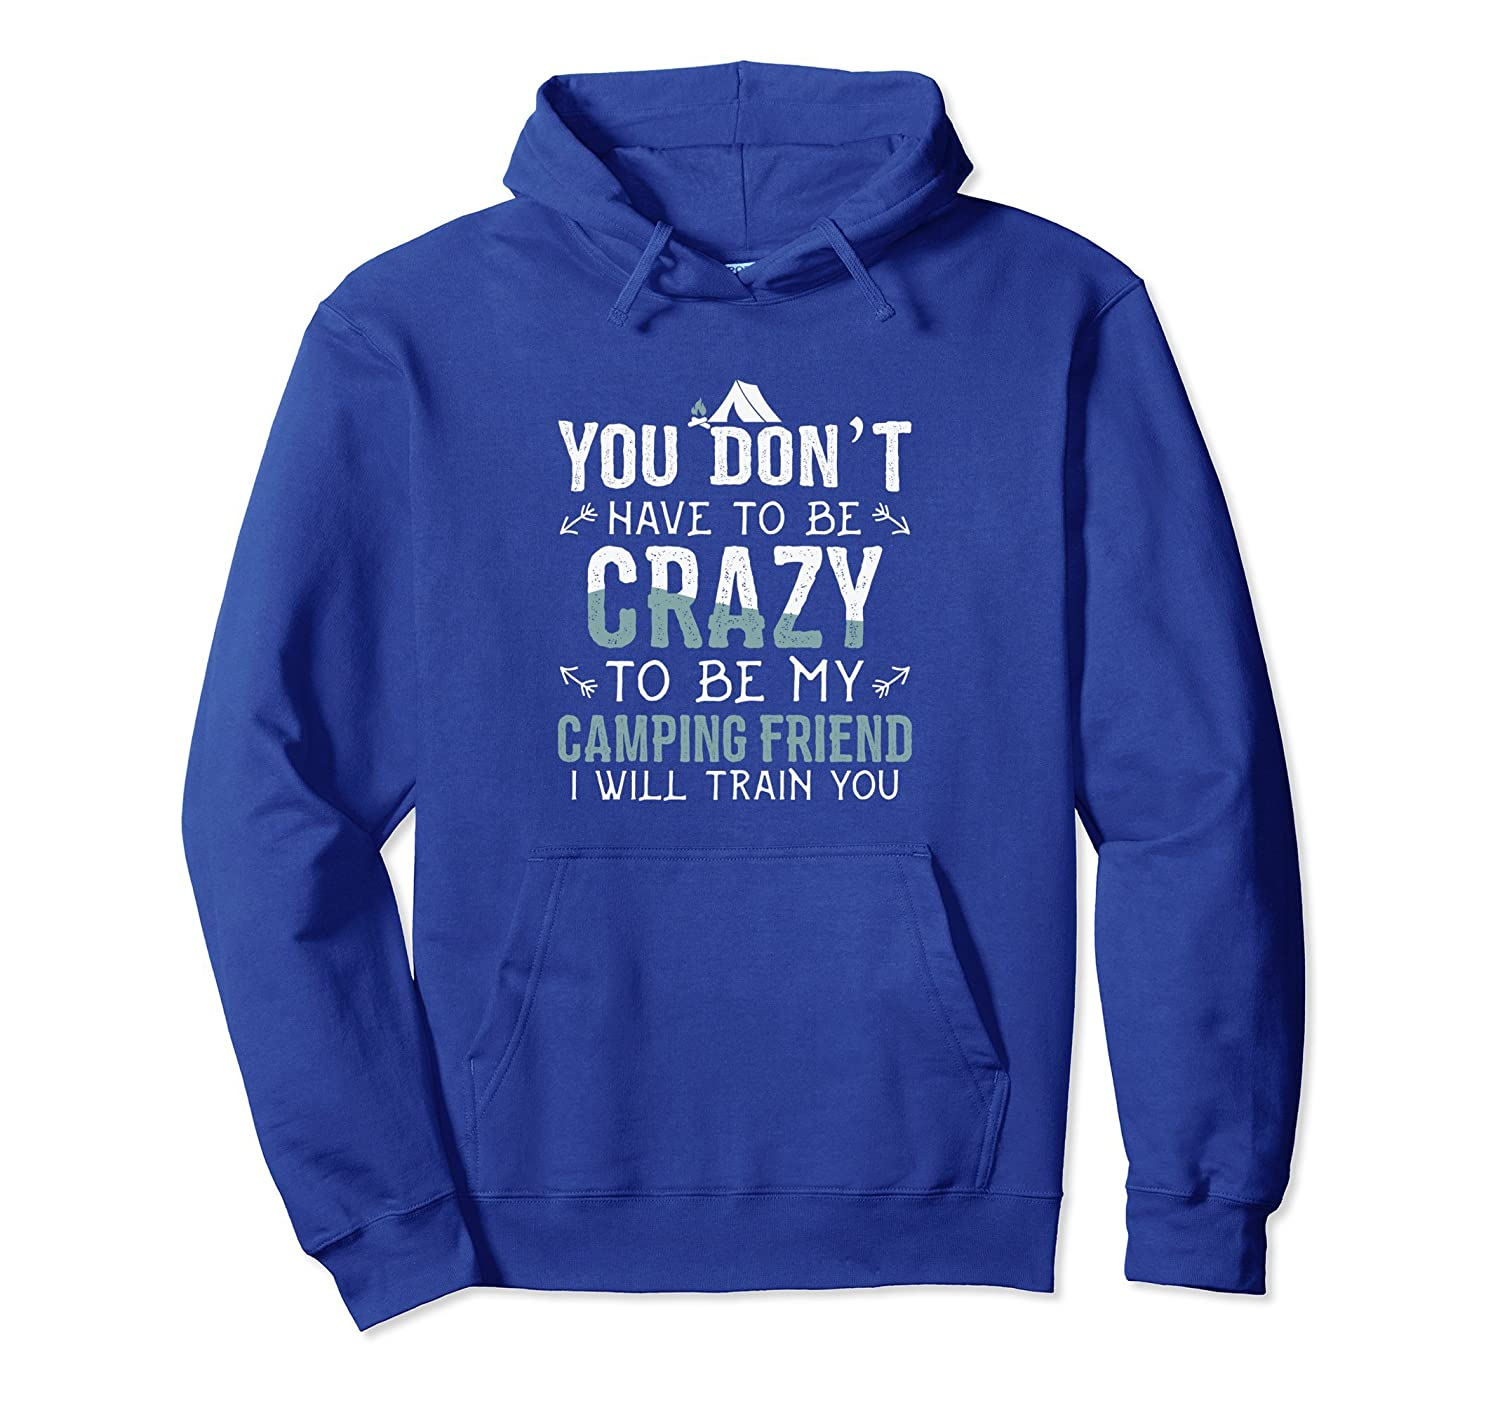 You Don't Have To Be Crazy To Be My Friend Camping Hoodie-mt